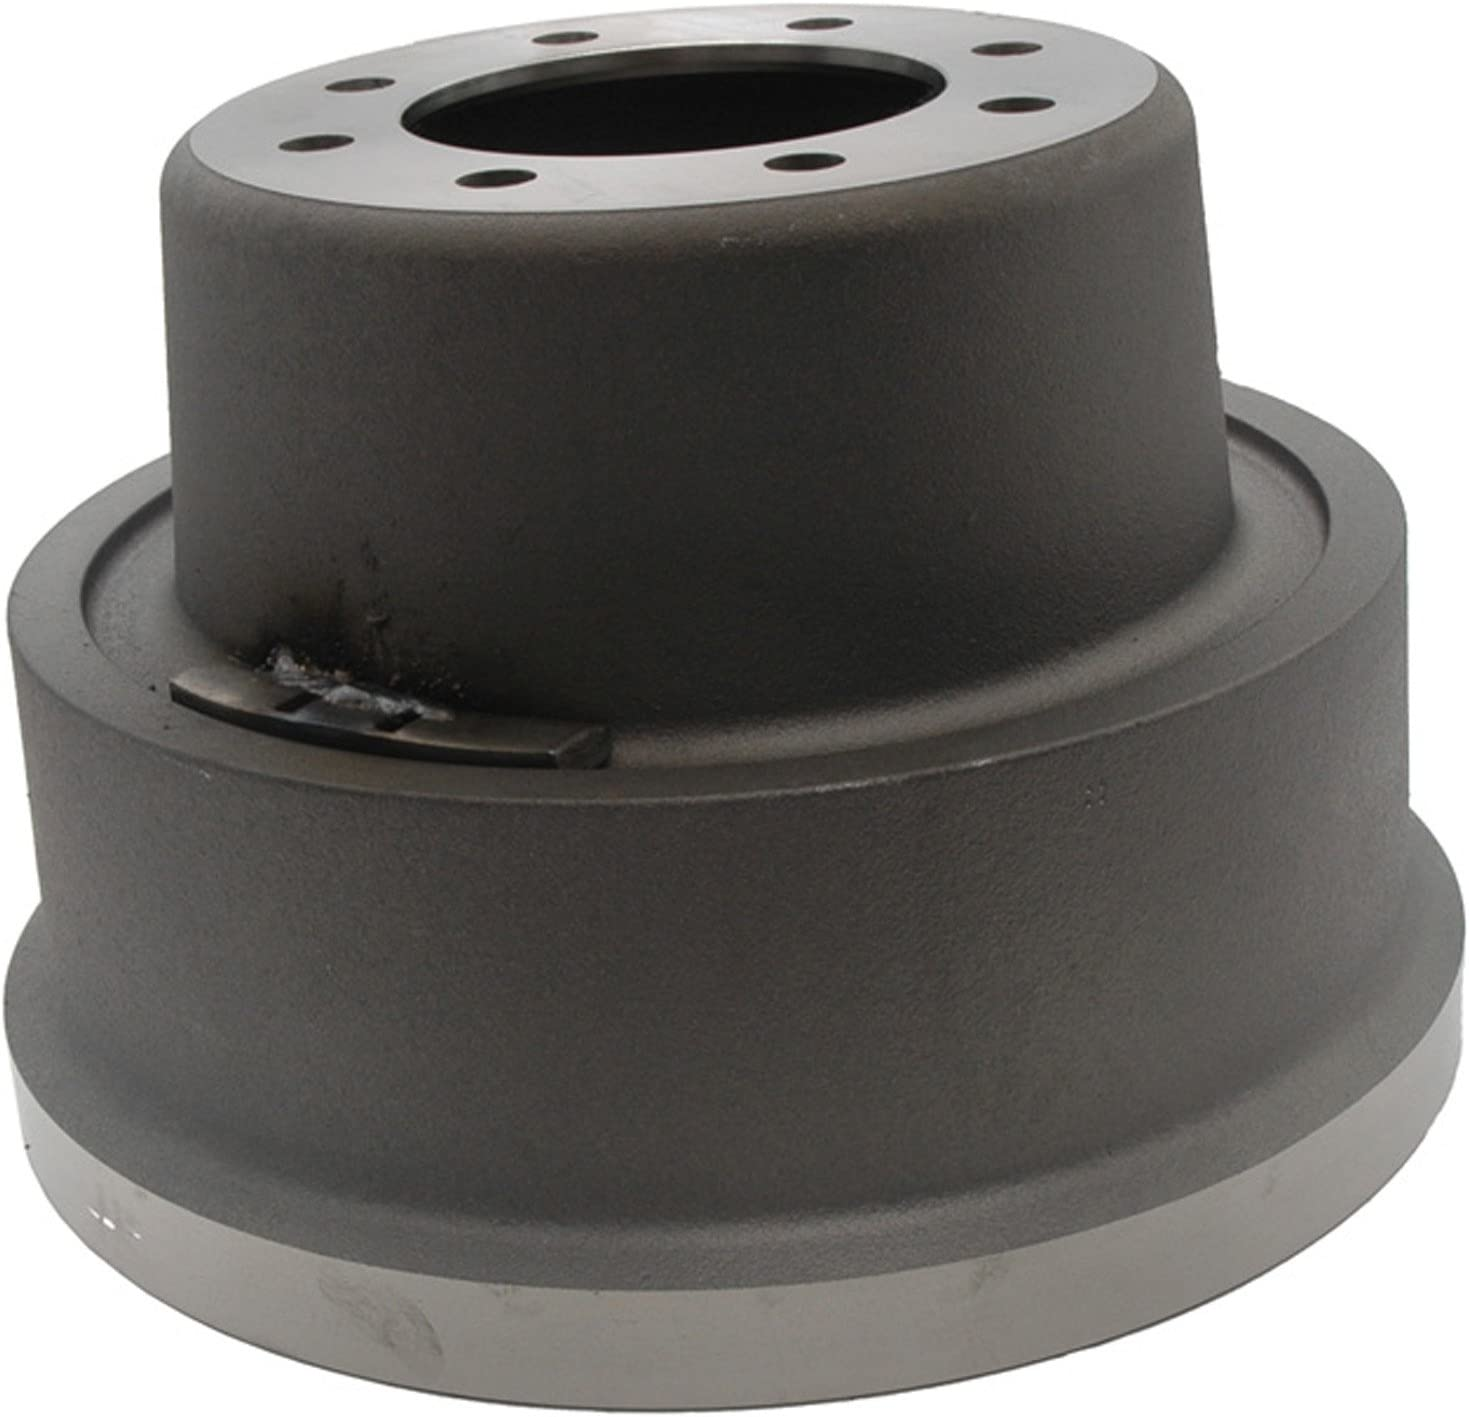 Cheap mail order specialty store ACDelco Professional 18B423 Brake Drum Fees free Rear